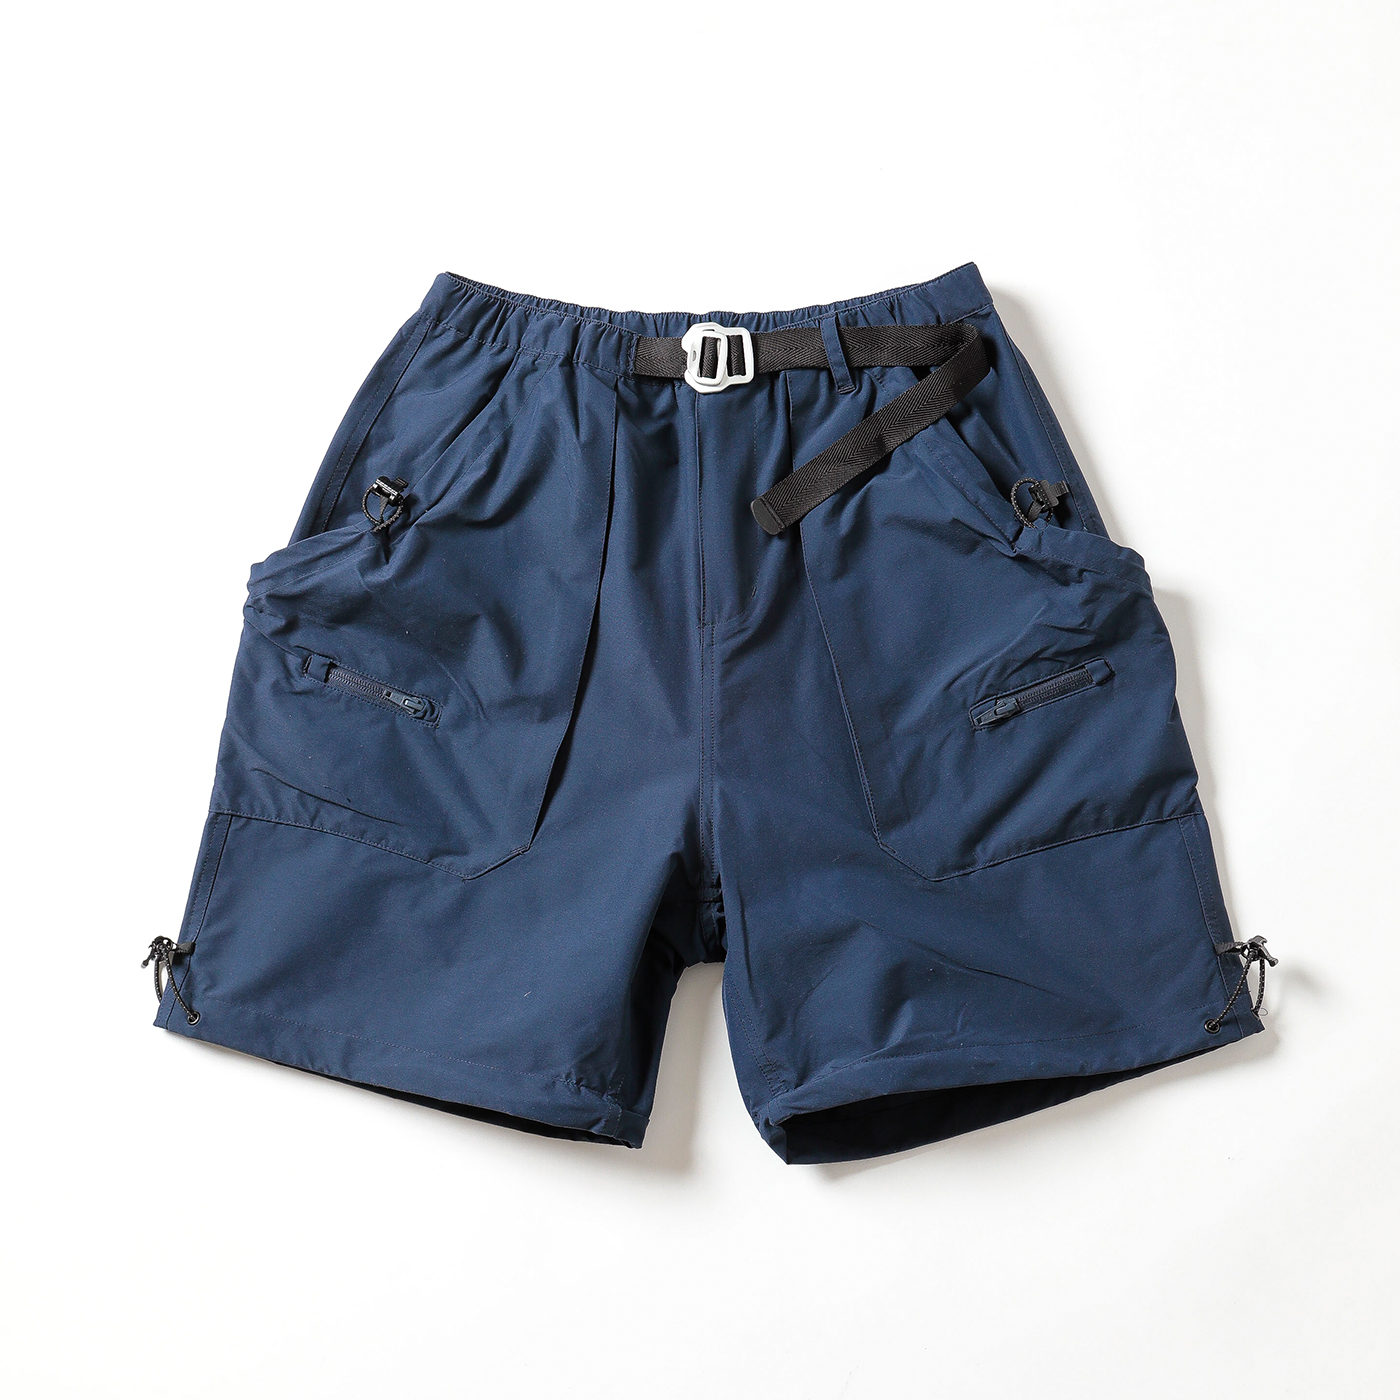 product: Garfield Shorts / color: BLUE 1